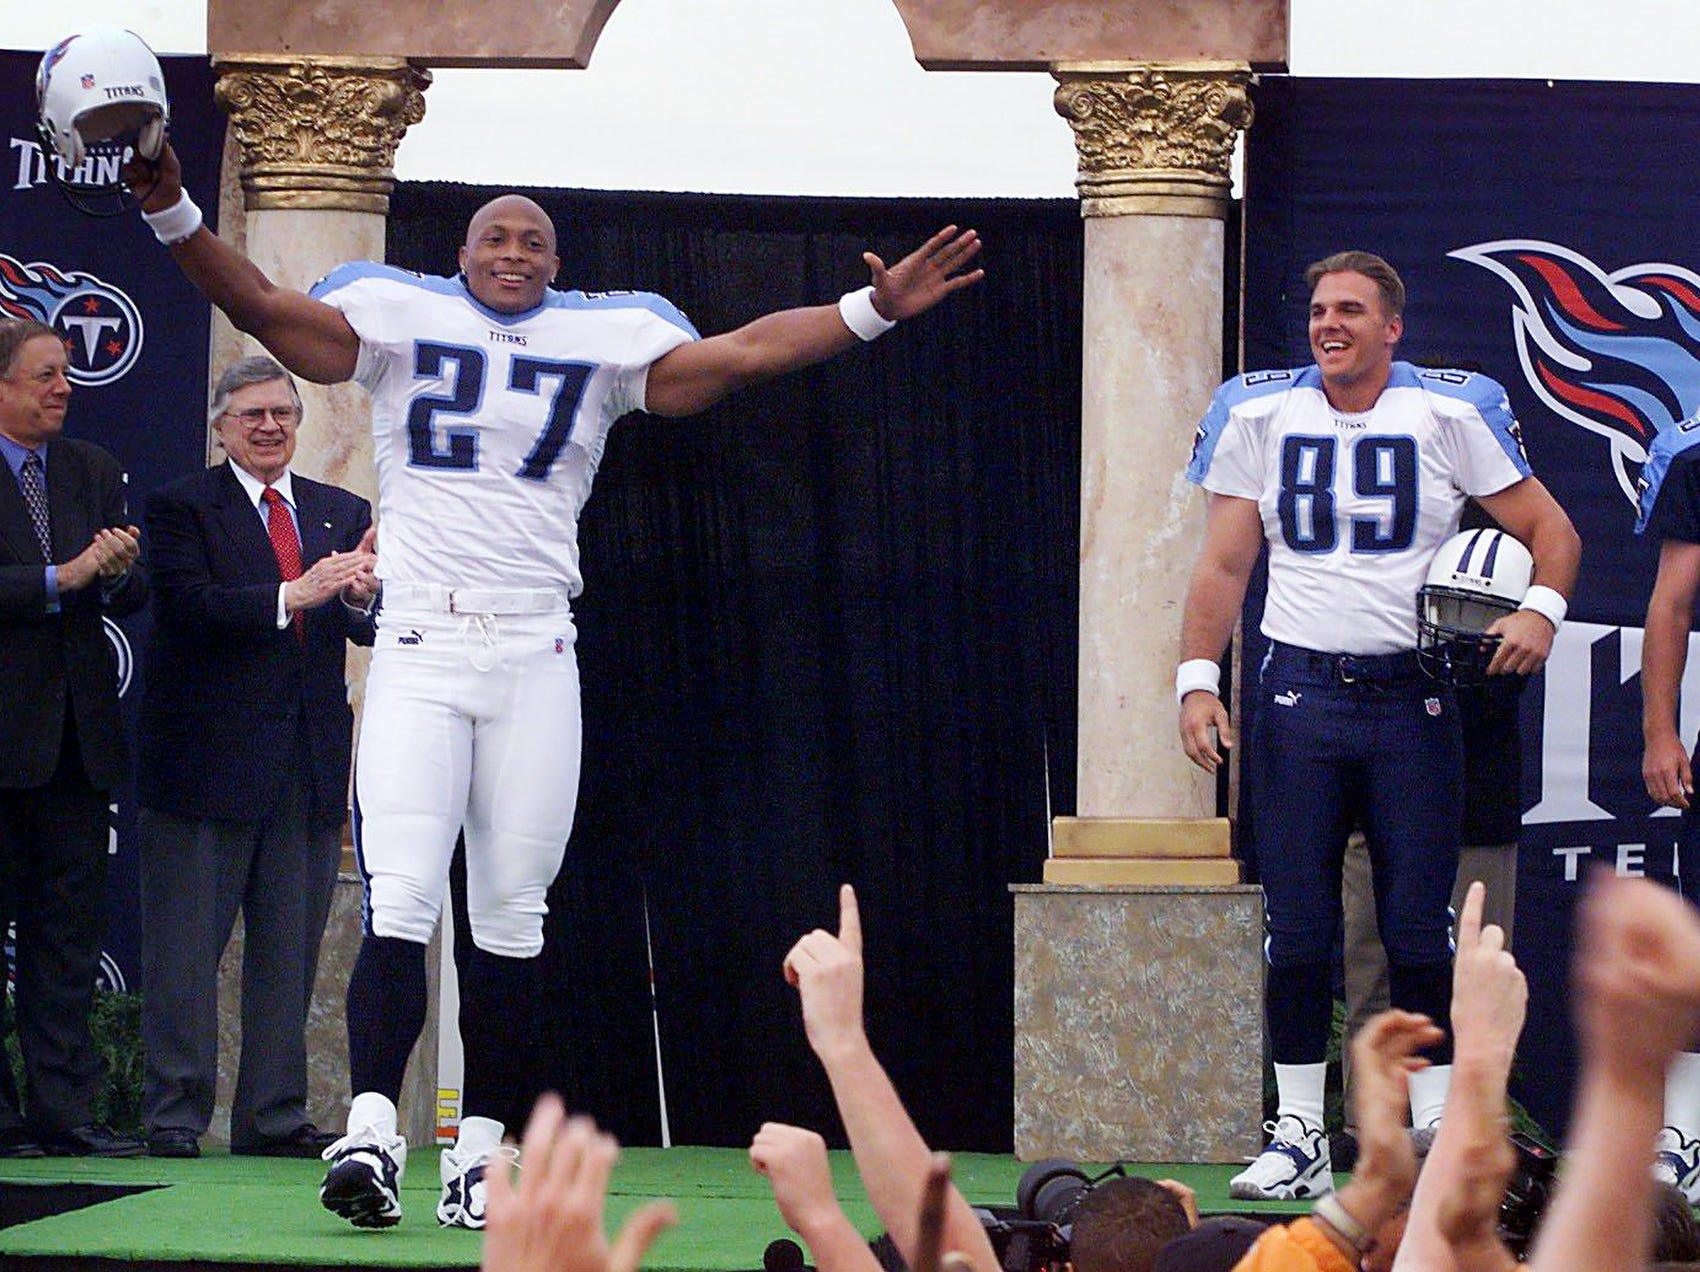 Star running back Eddie George (27) of the Tennessee Titans shows off the new uniform with teammates Frank Wycheck (89) and Craig Hentrich (15) for the fans at the unveiling of the team uniforms April 13, 1999. Looking on is Gov. Phil Bredesen, left, and Titans owner Bud Adams.